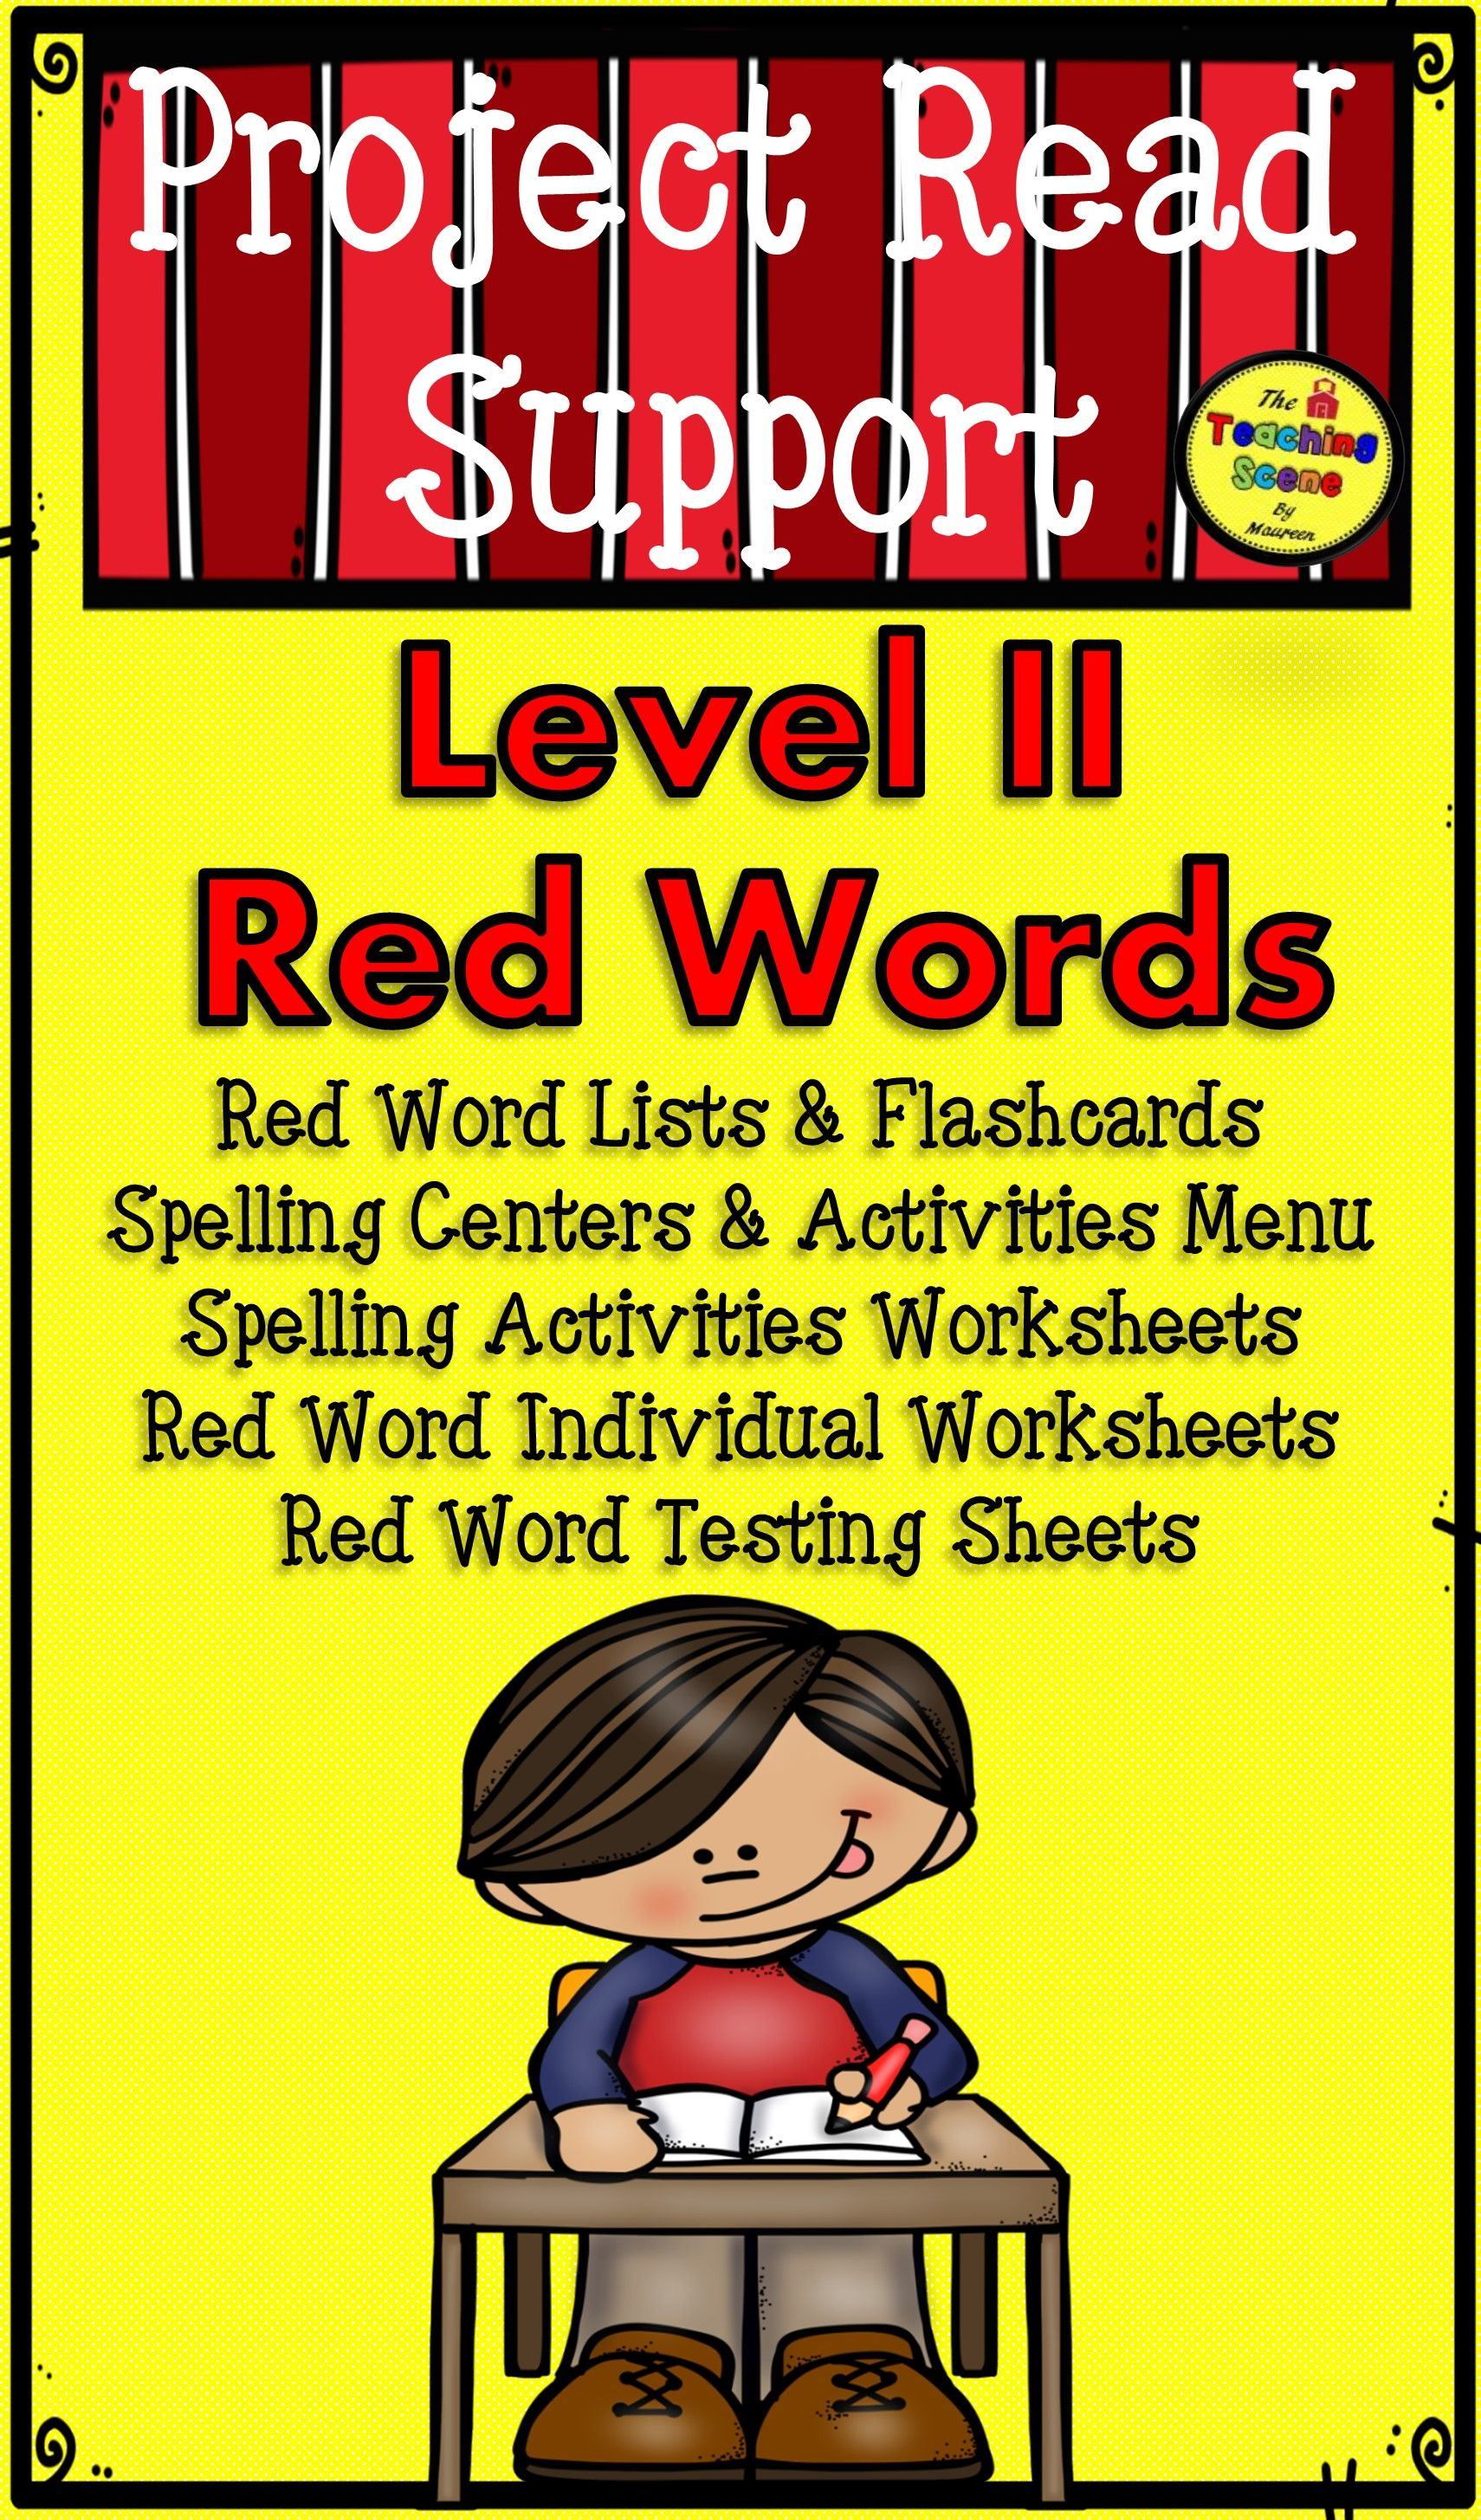 Project Read Support Red Word Level Ii Centers